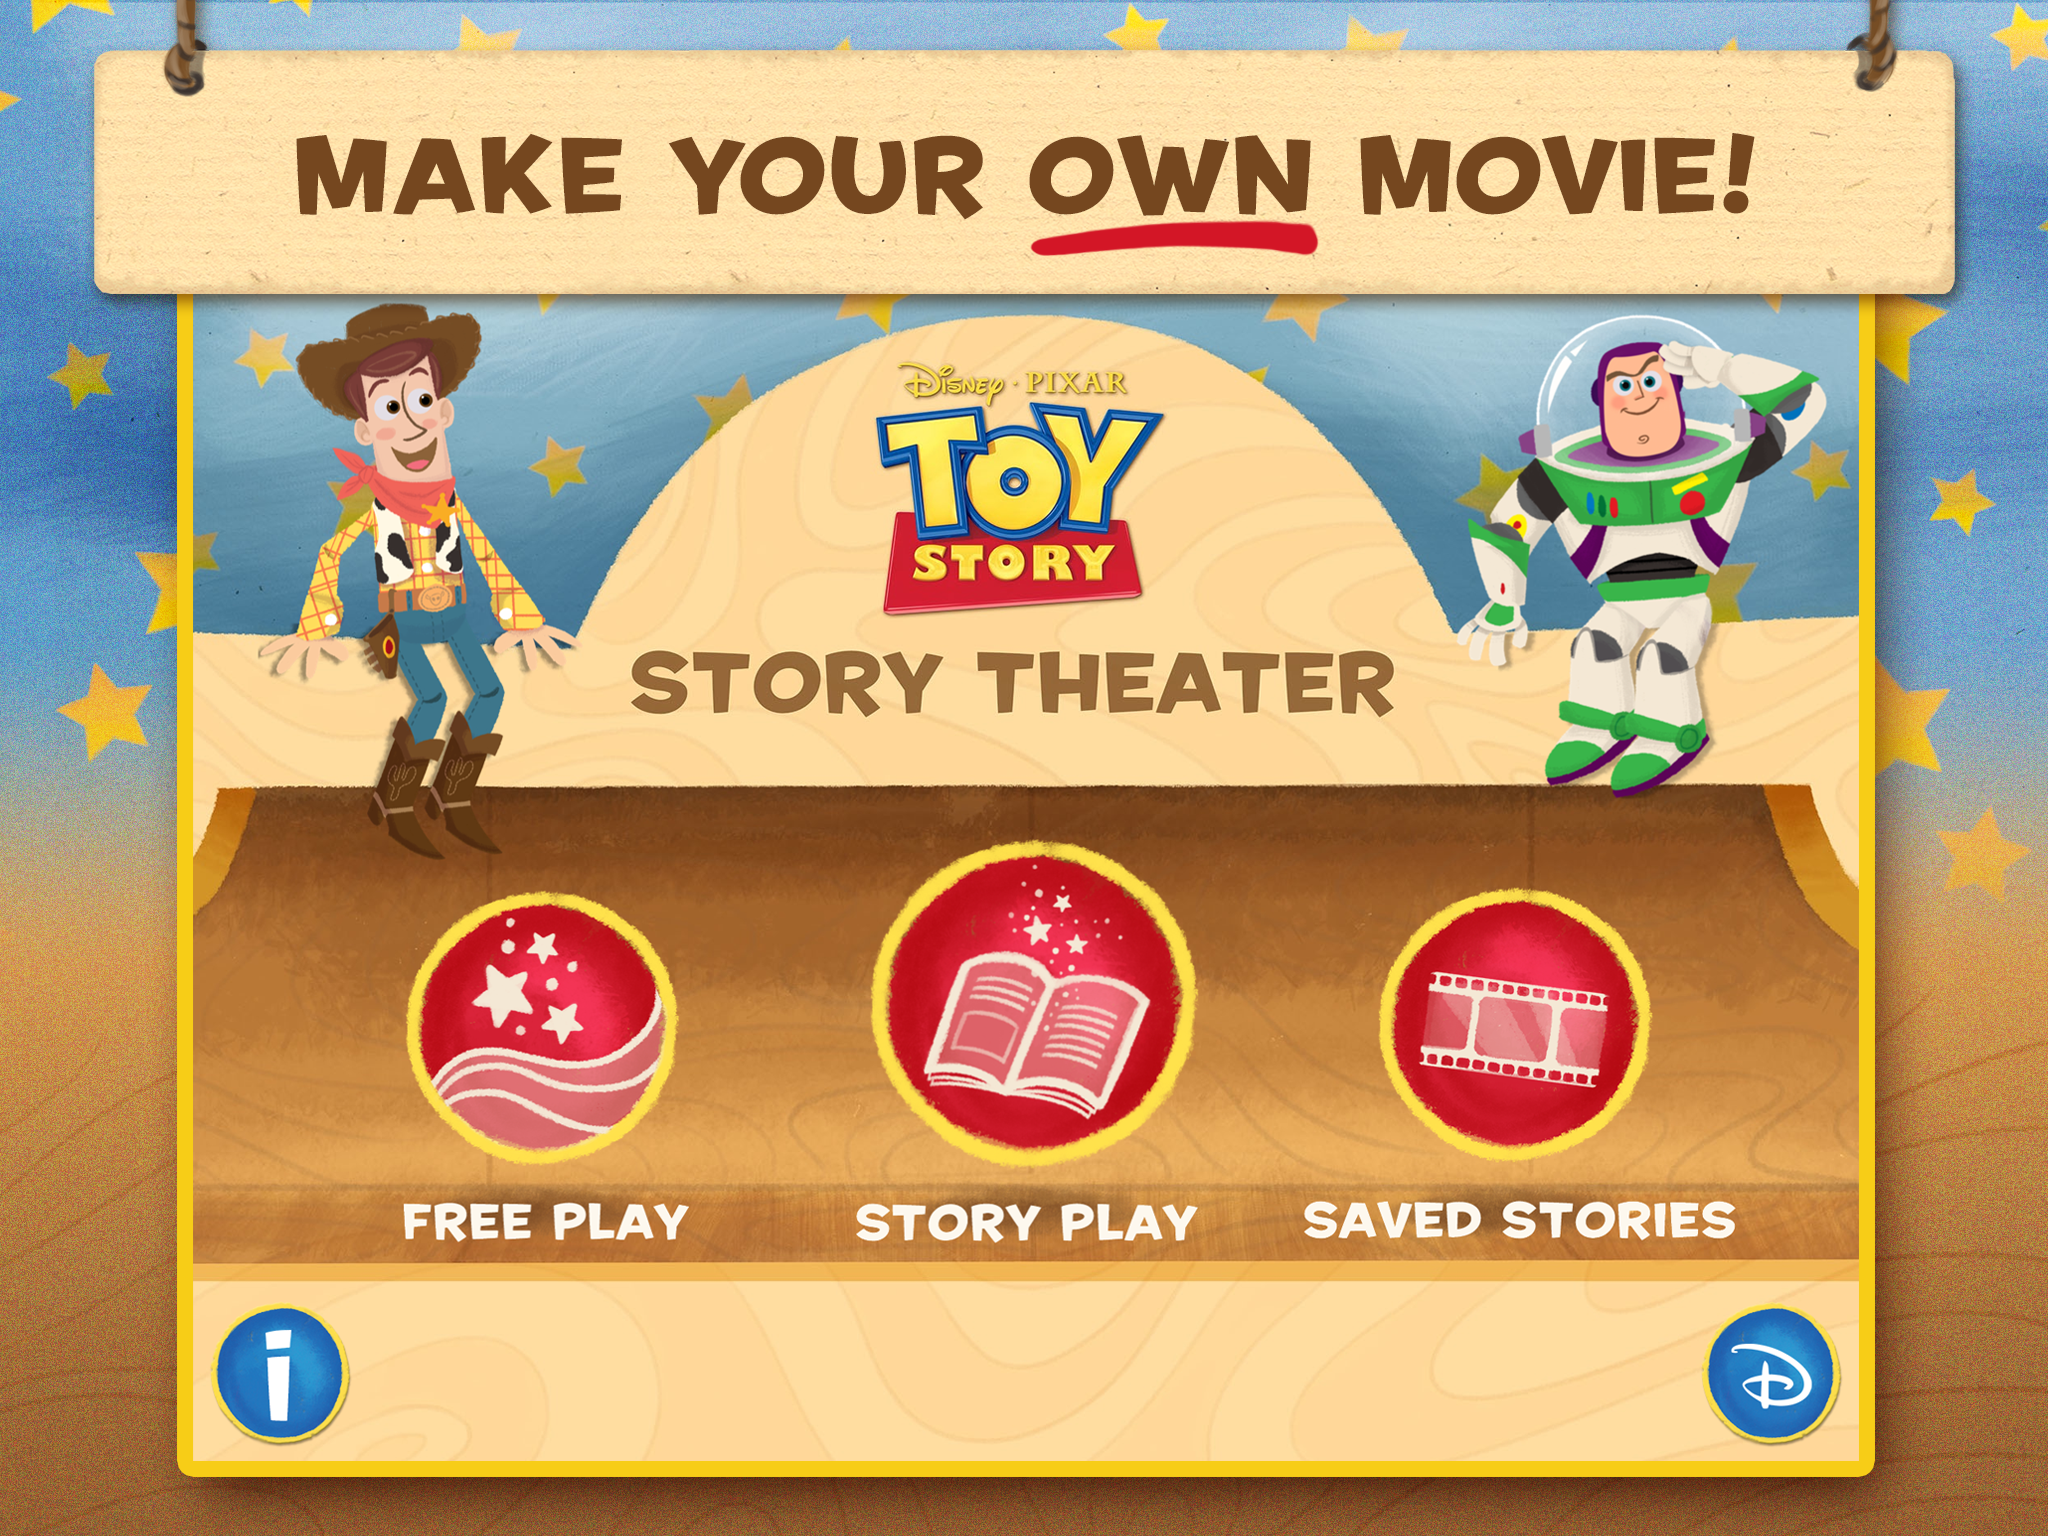 ToyStory_ipad_screen1.png